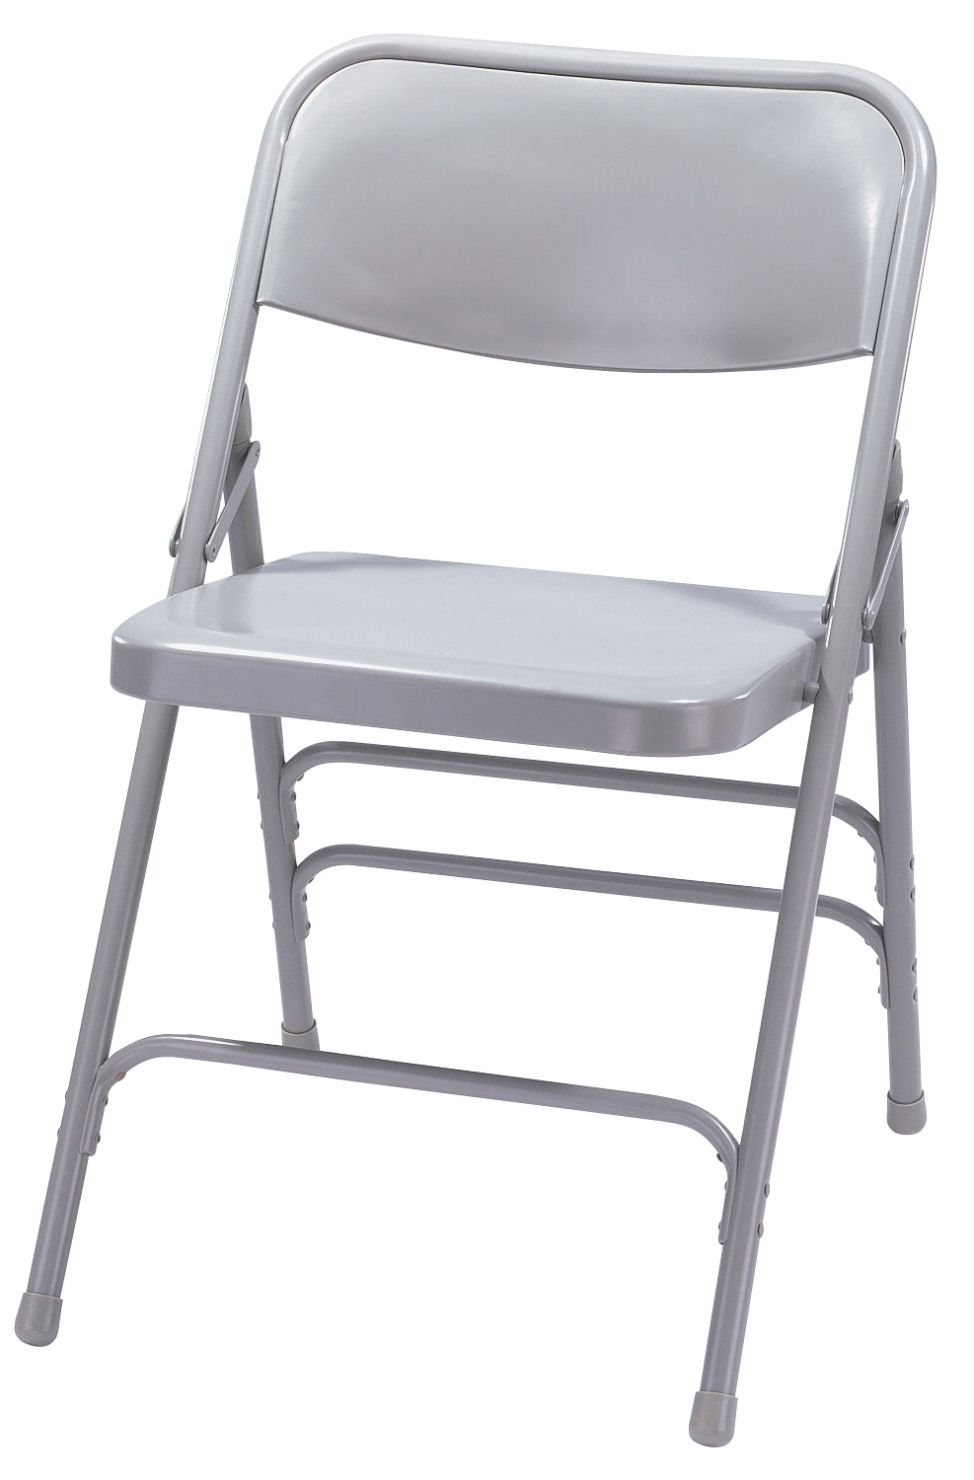 National Public Seating 300 Series Workhorse Steel Folding Chair, 17-1/4 Inch Seat, Various Options